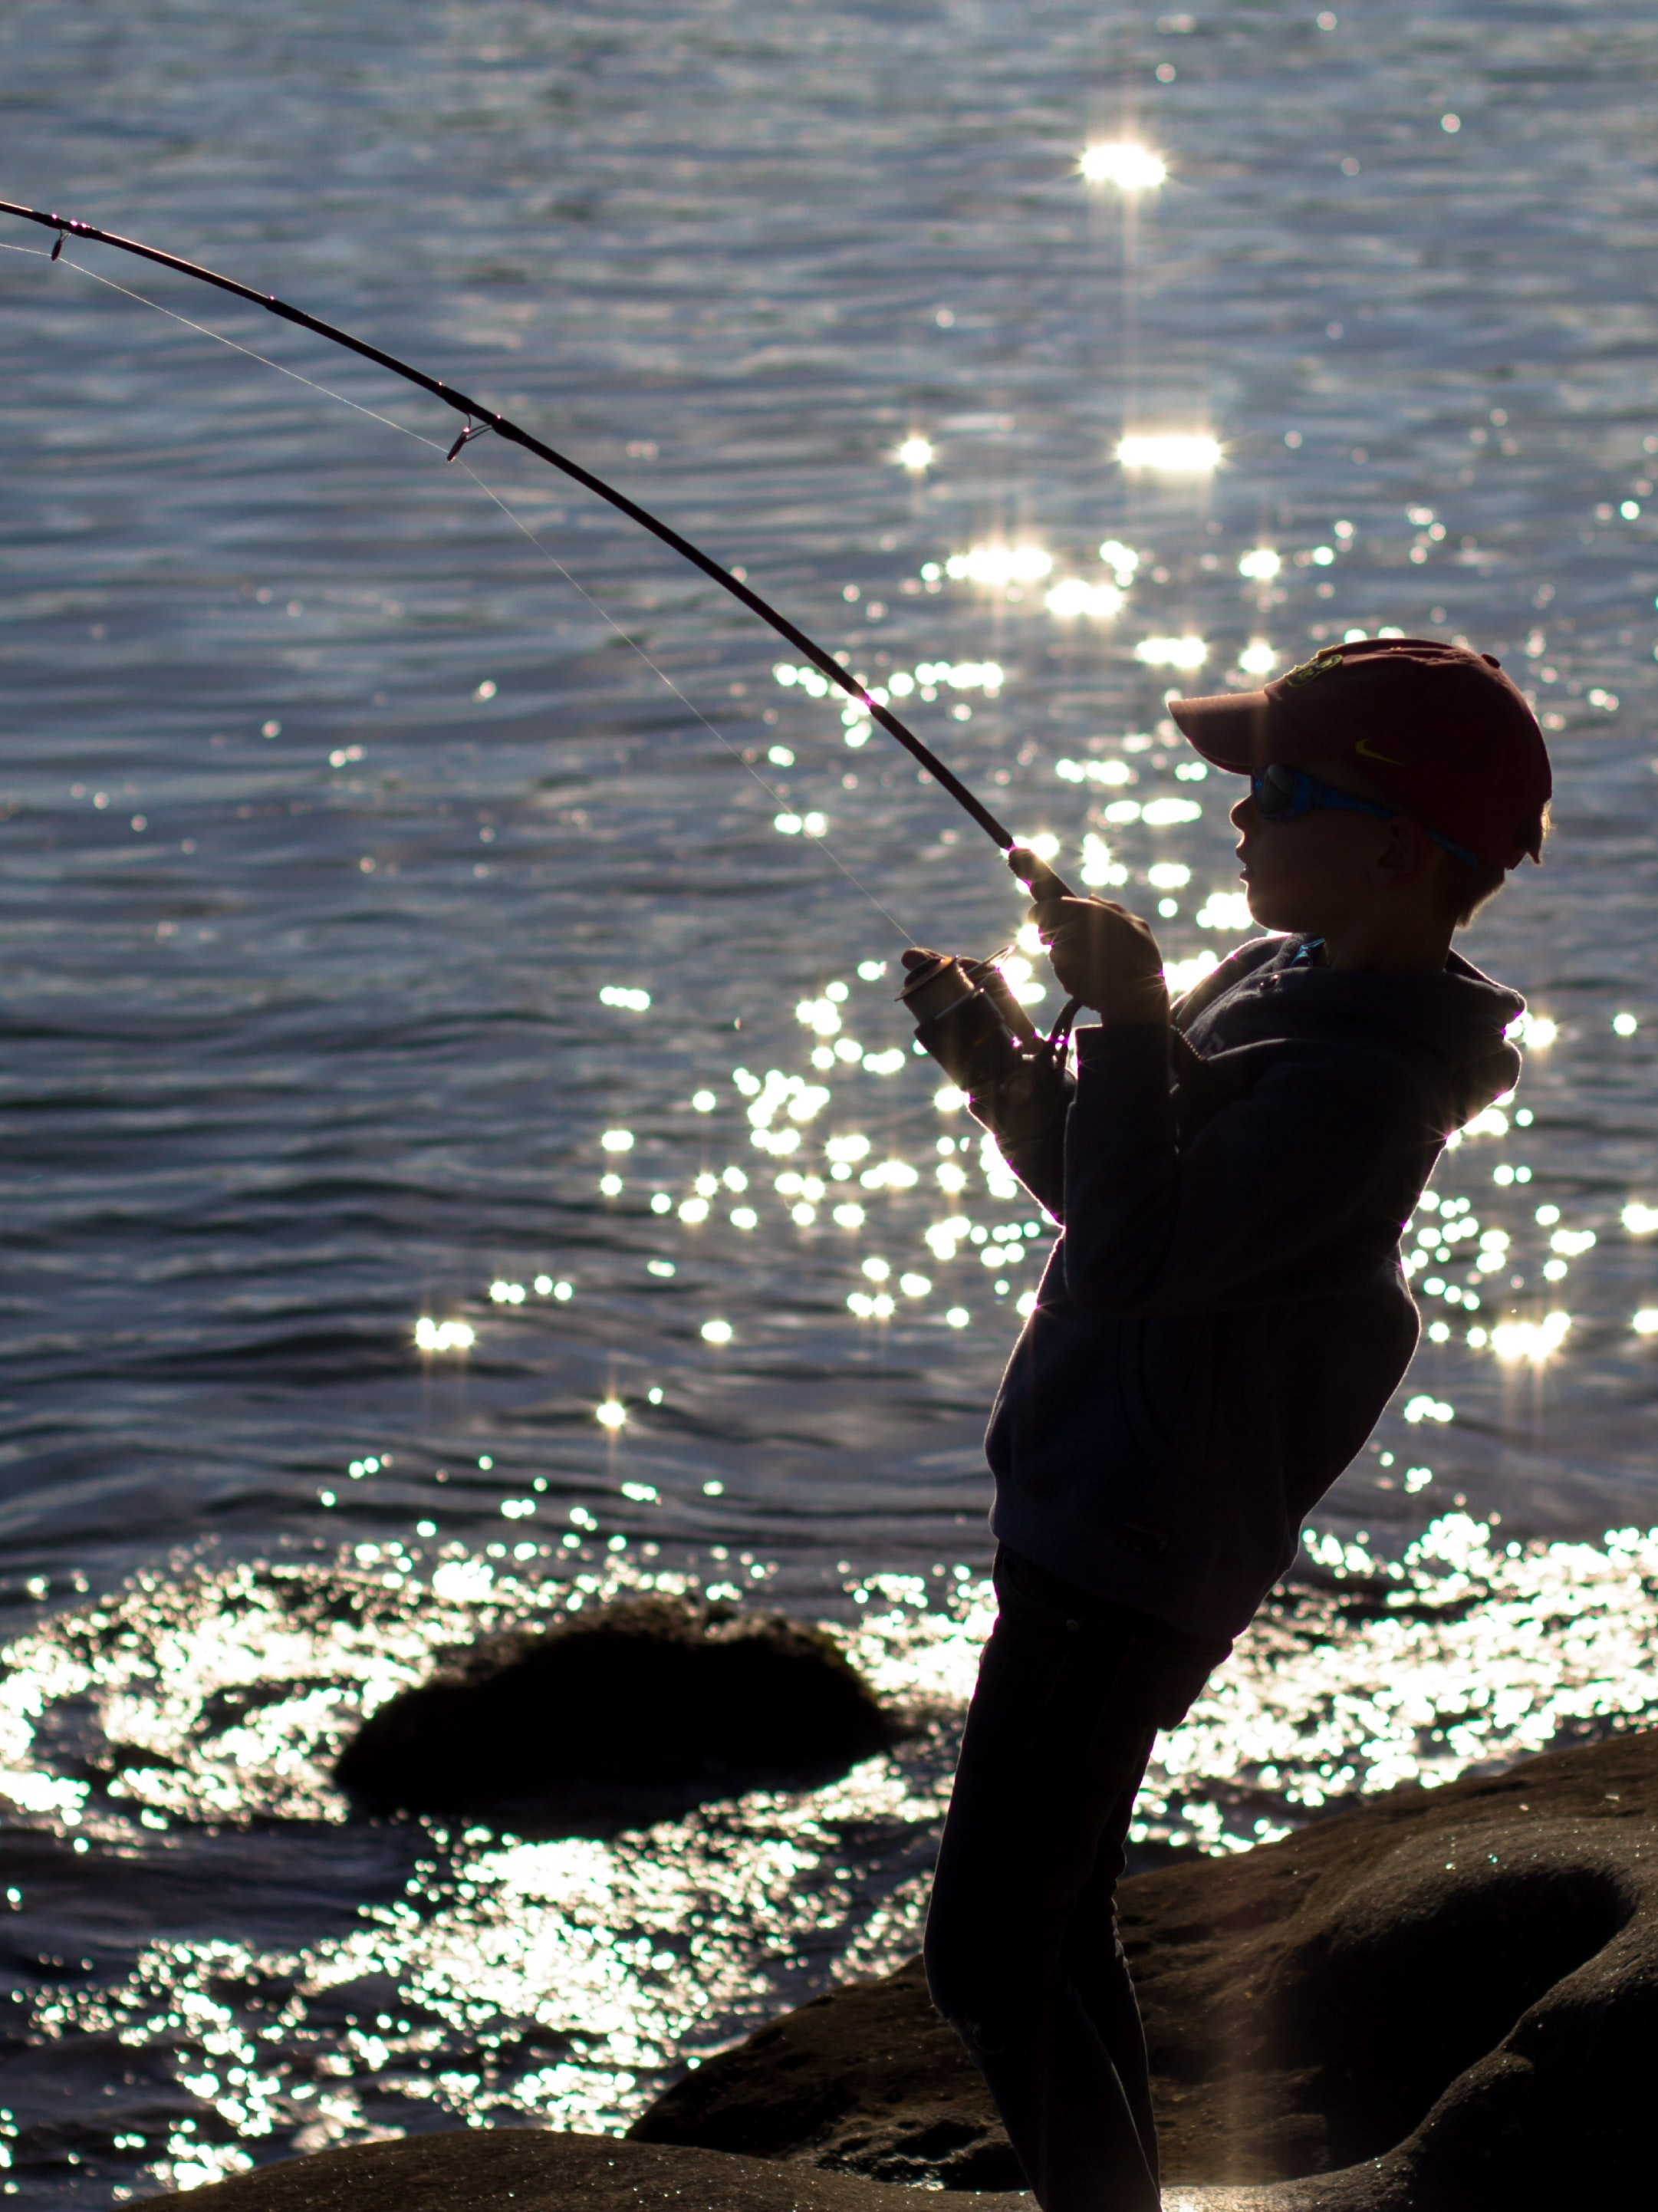 silhouette of boy fishing on shore